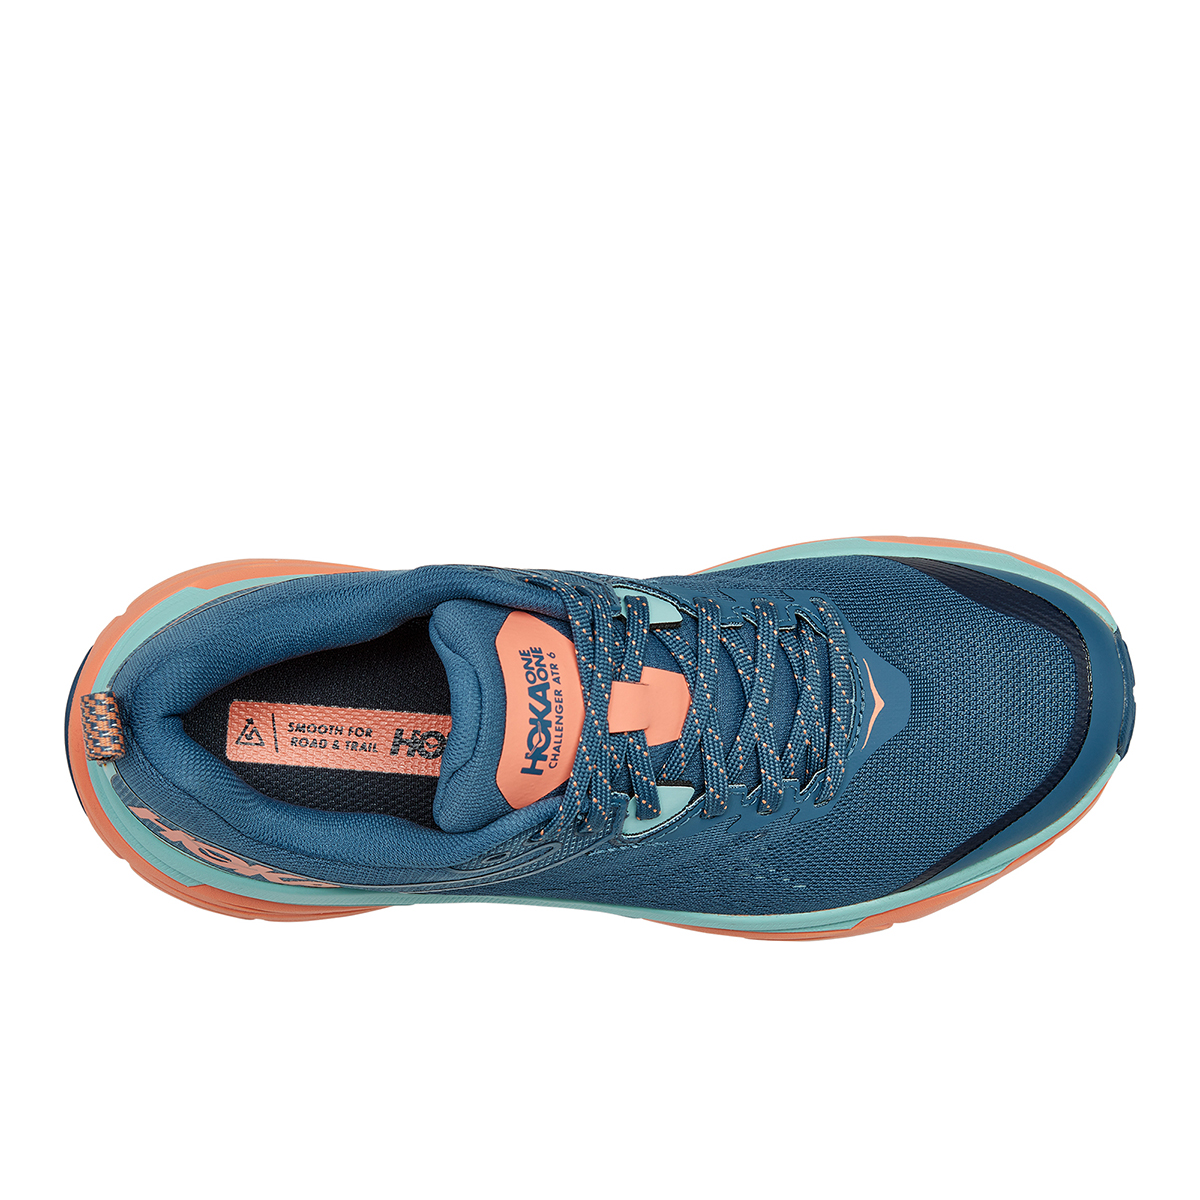 Women's Hoka One One Challenger ATR 6 Trail Running Shoe - Color: Real Teal / Cantaloupe - Size: 5 - Width: Regular, Real Teal / Cantaloupe, large, image 3